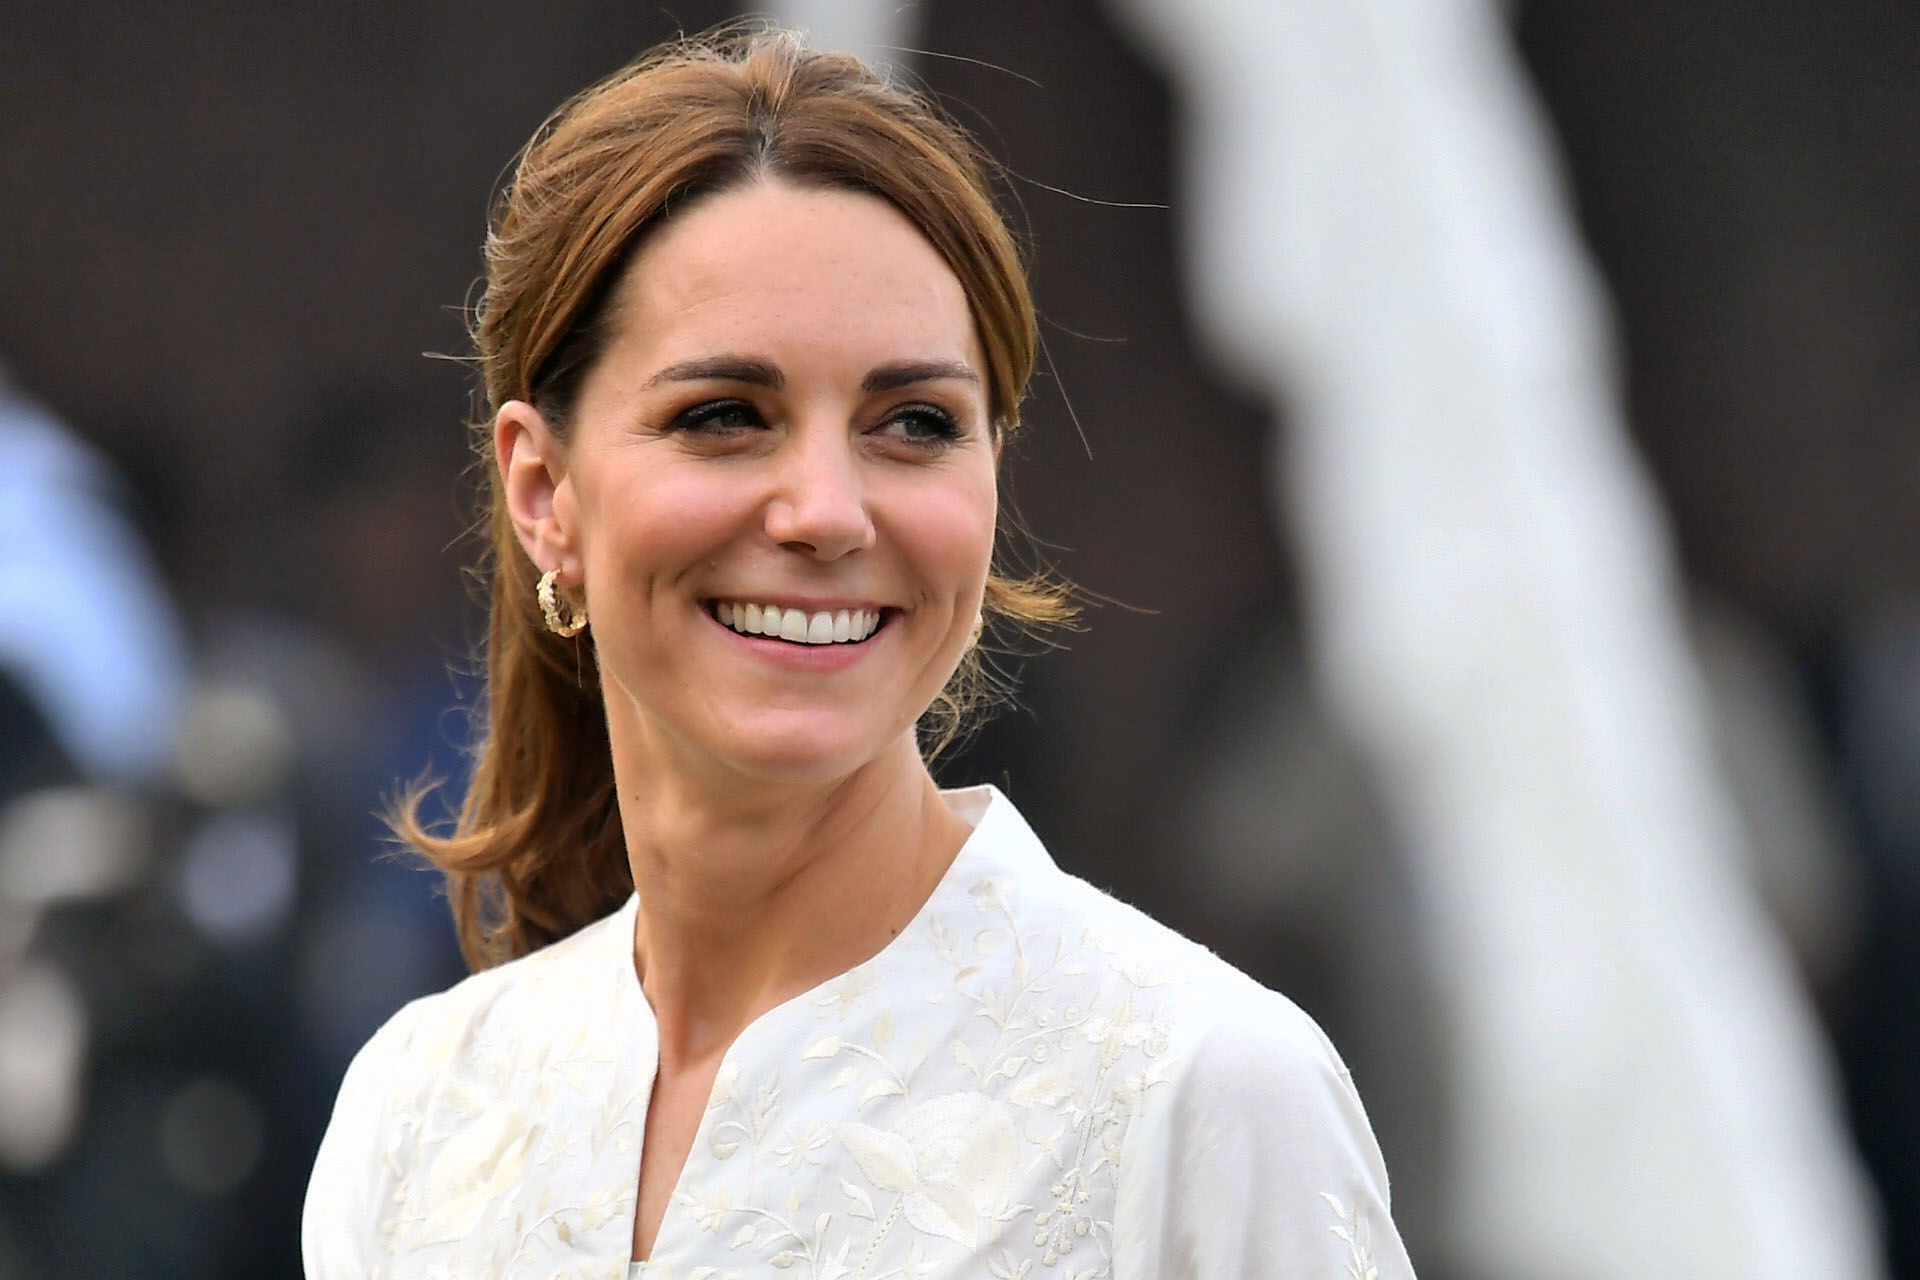 Kate Middleton to Give a Rare Interview on CNN as Part of Her Tour of Pakistan